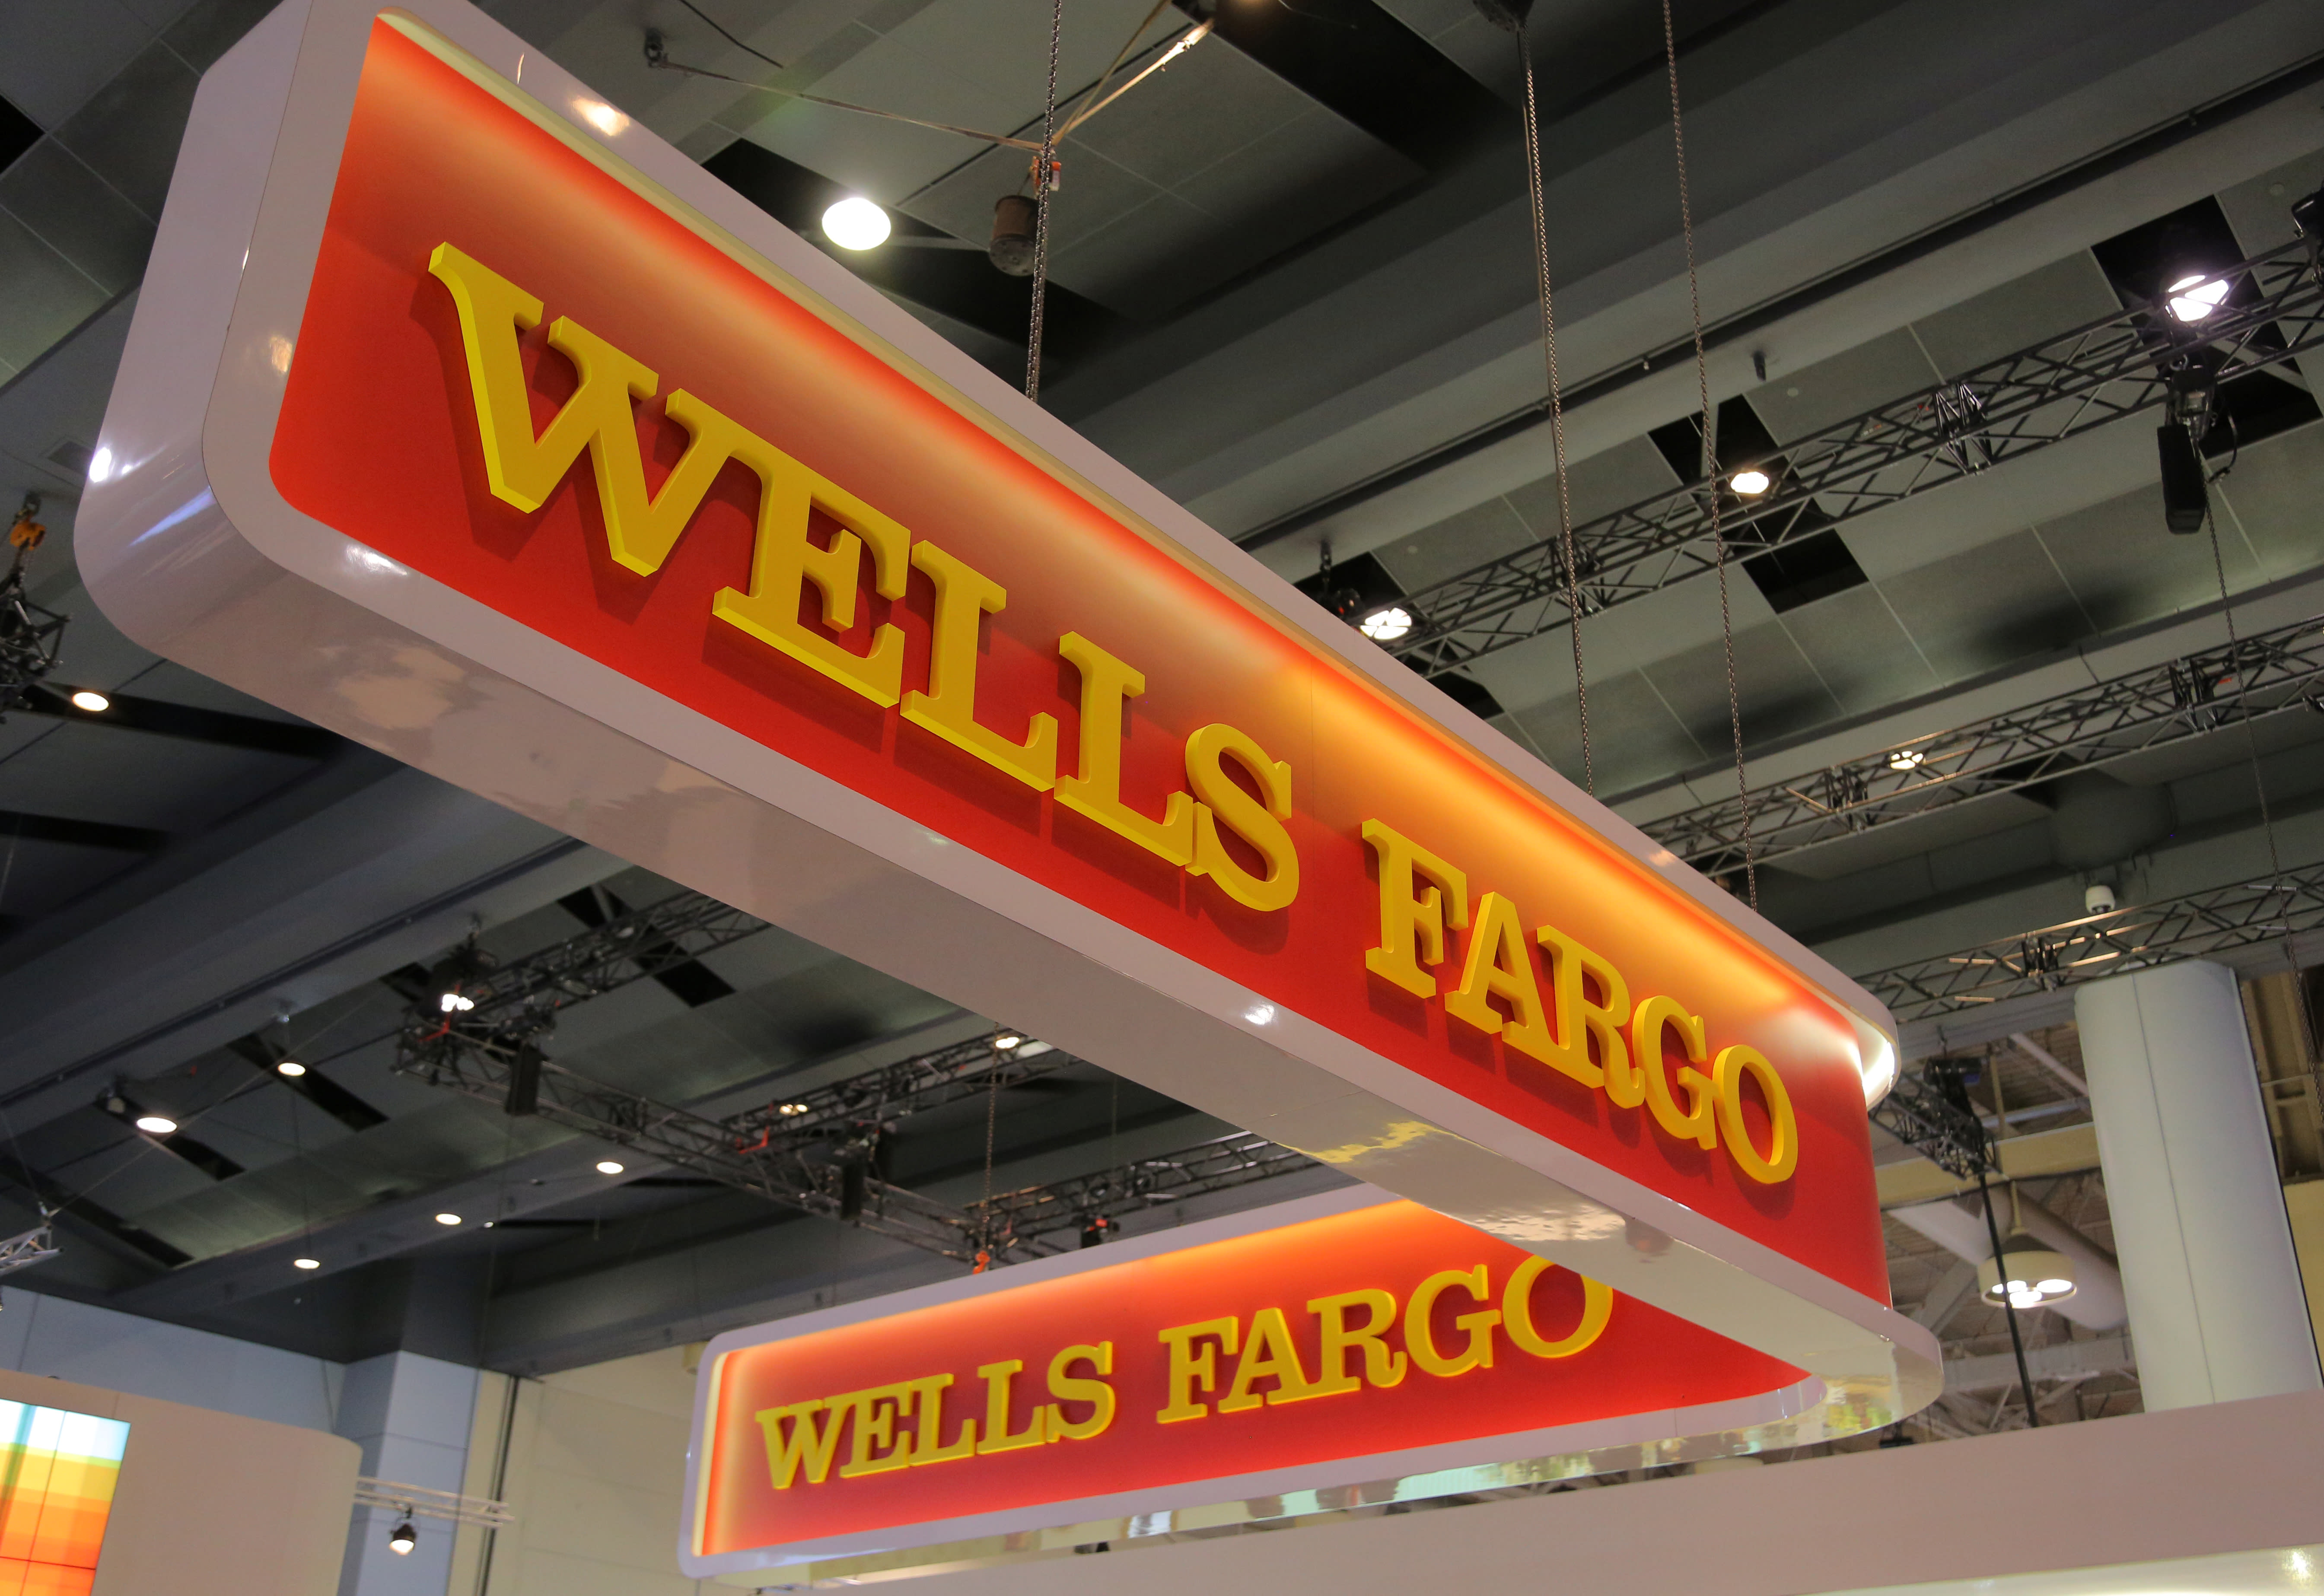 Wells Fargo is close to settlements with the DOJ and SEC over its sales scandal: NYT